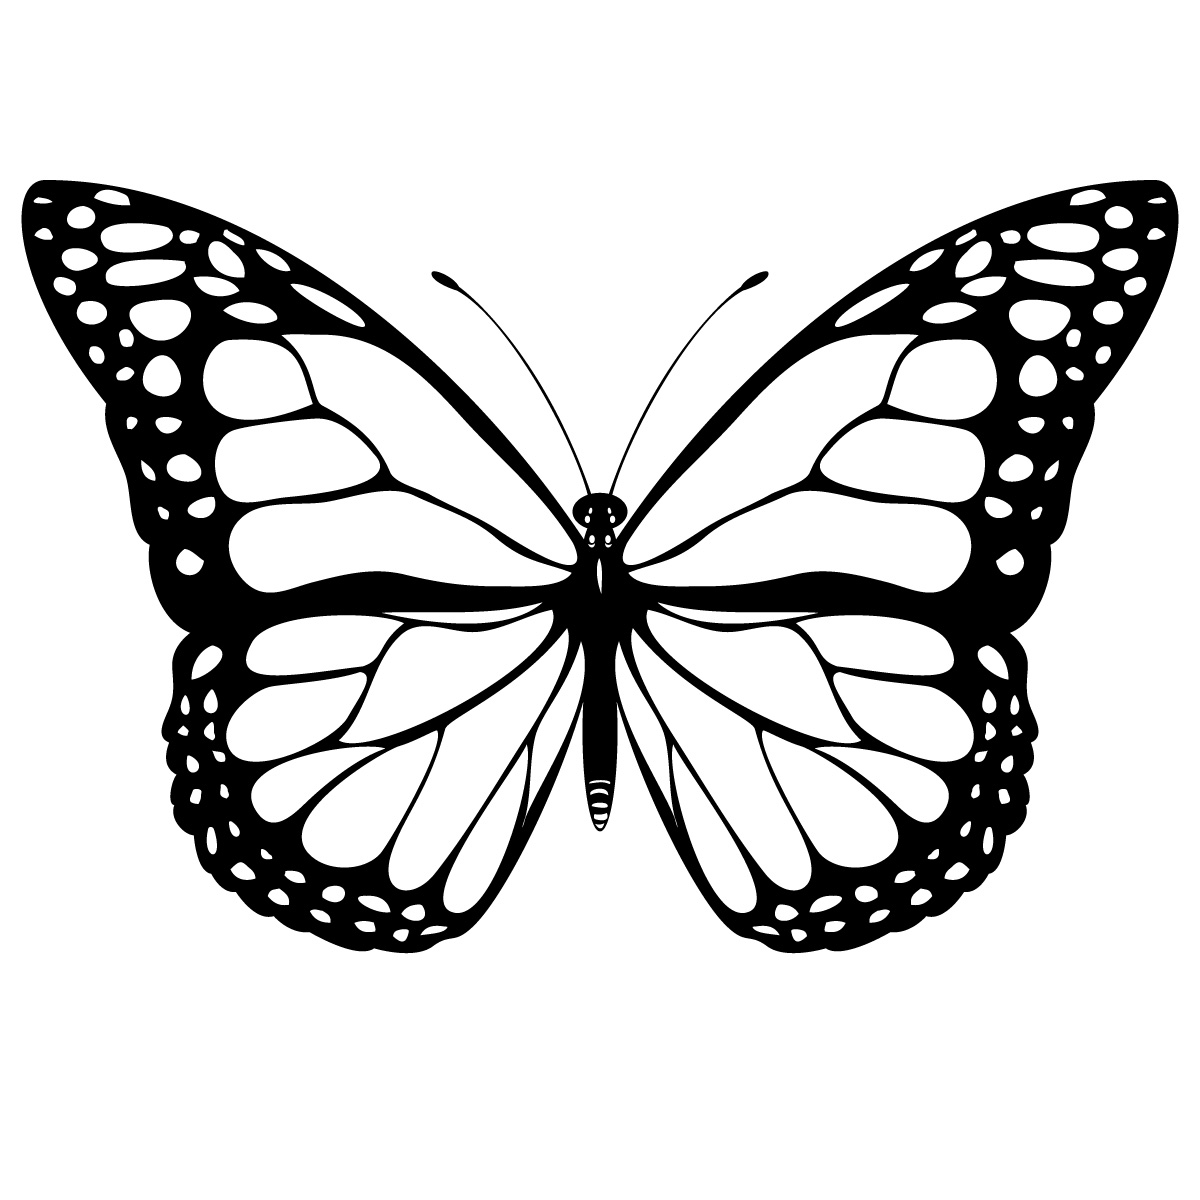 drawing monarch butterfly free monarch butterfly drawing download free clip art butterfly monarch drawing